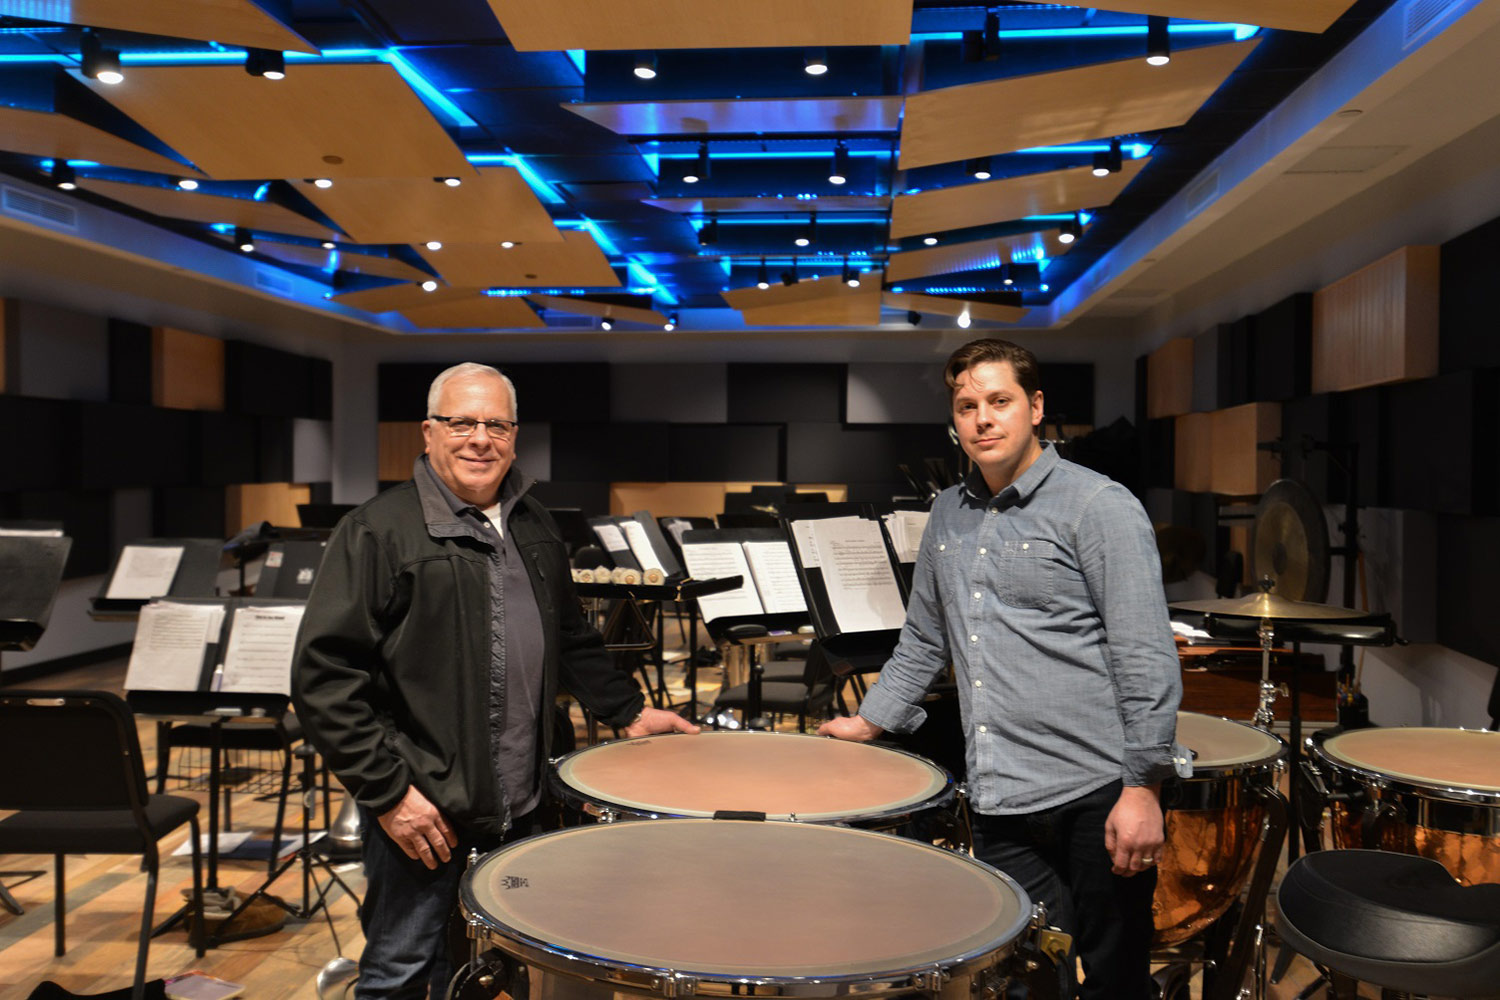 Salvation Army Eastern Territory Recording Studio. WSDG was called to redesign the complex. Live Room, Phill Bulla (Salvation Army Engineer) and Matthew Ballos (WSDG).